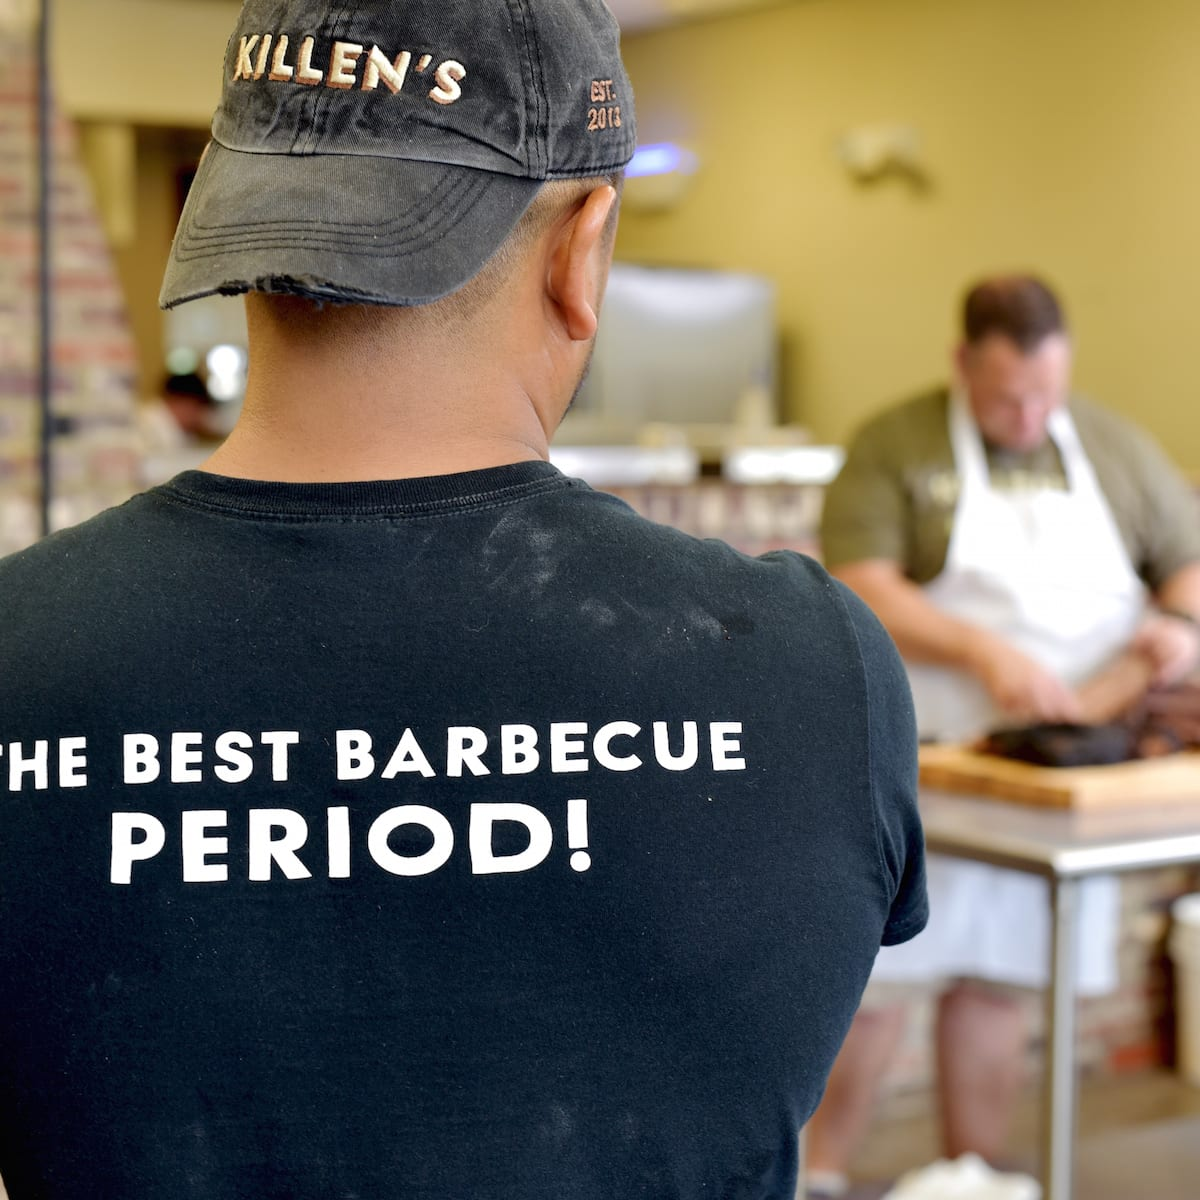 Killen's Barbecue Food Network